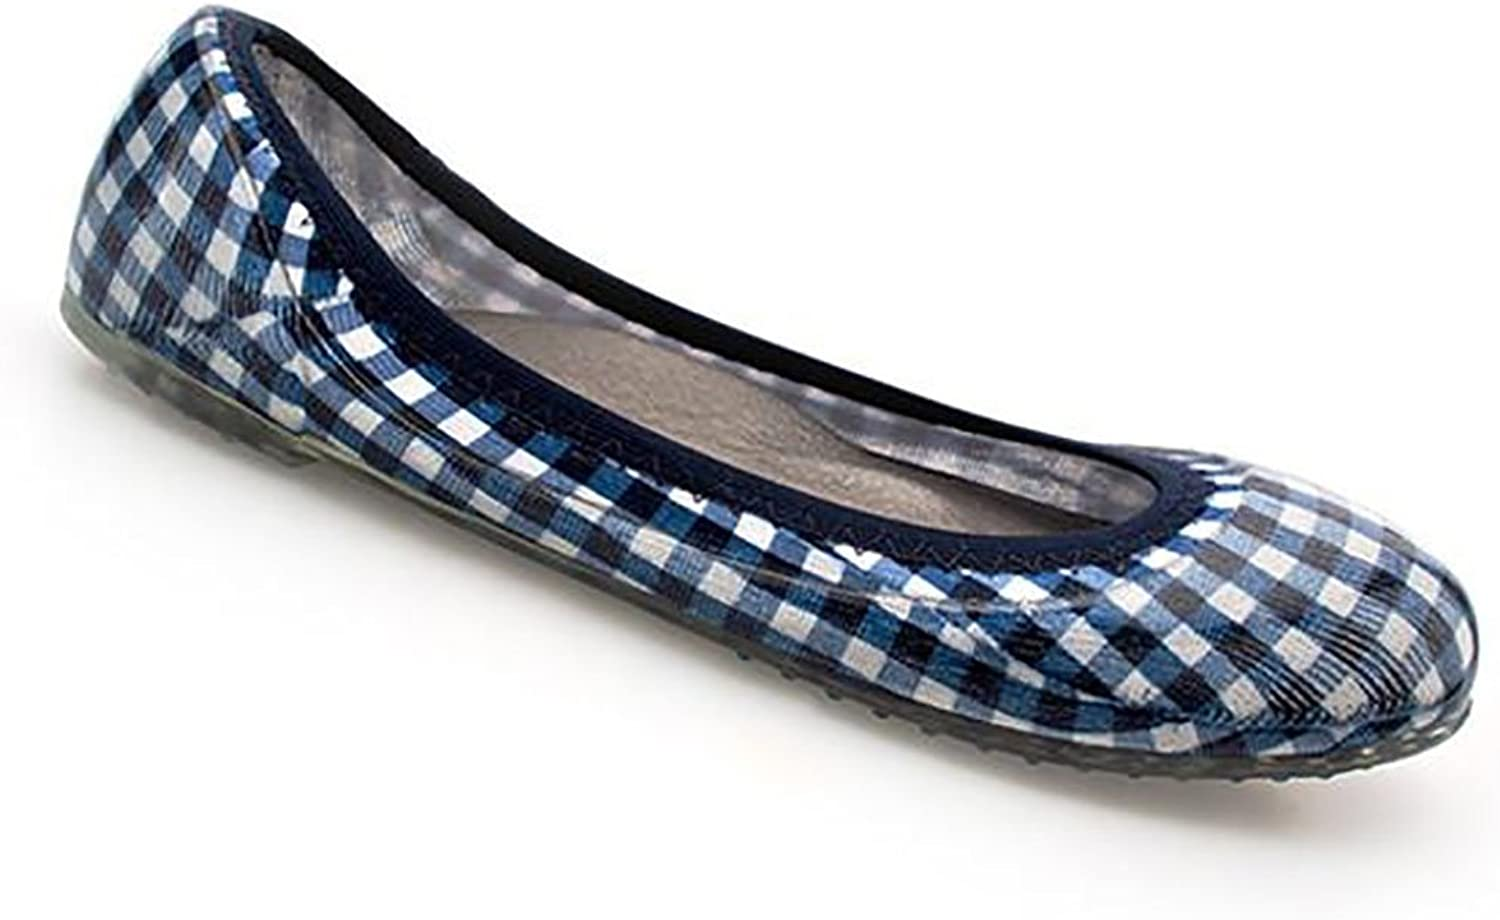 JA VIE Ballet shoes and Comfortable Ballet Flats Style for Every Day Wear